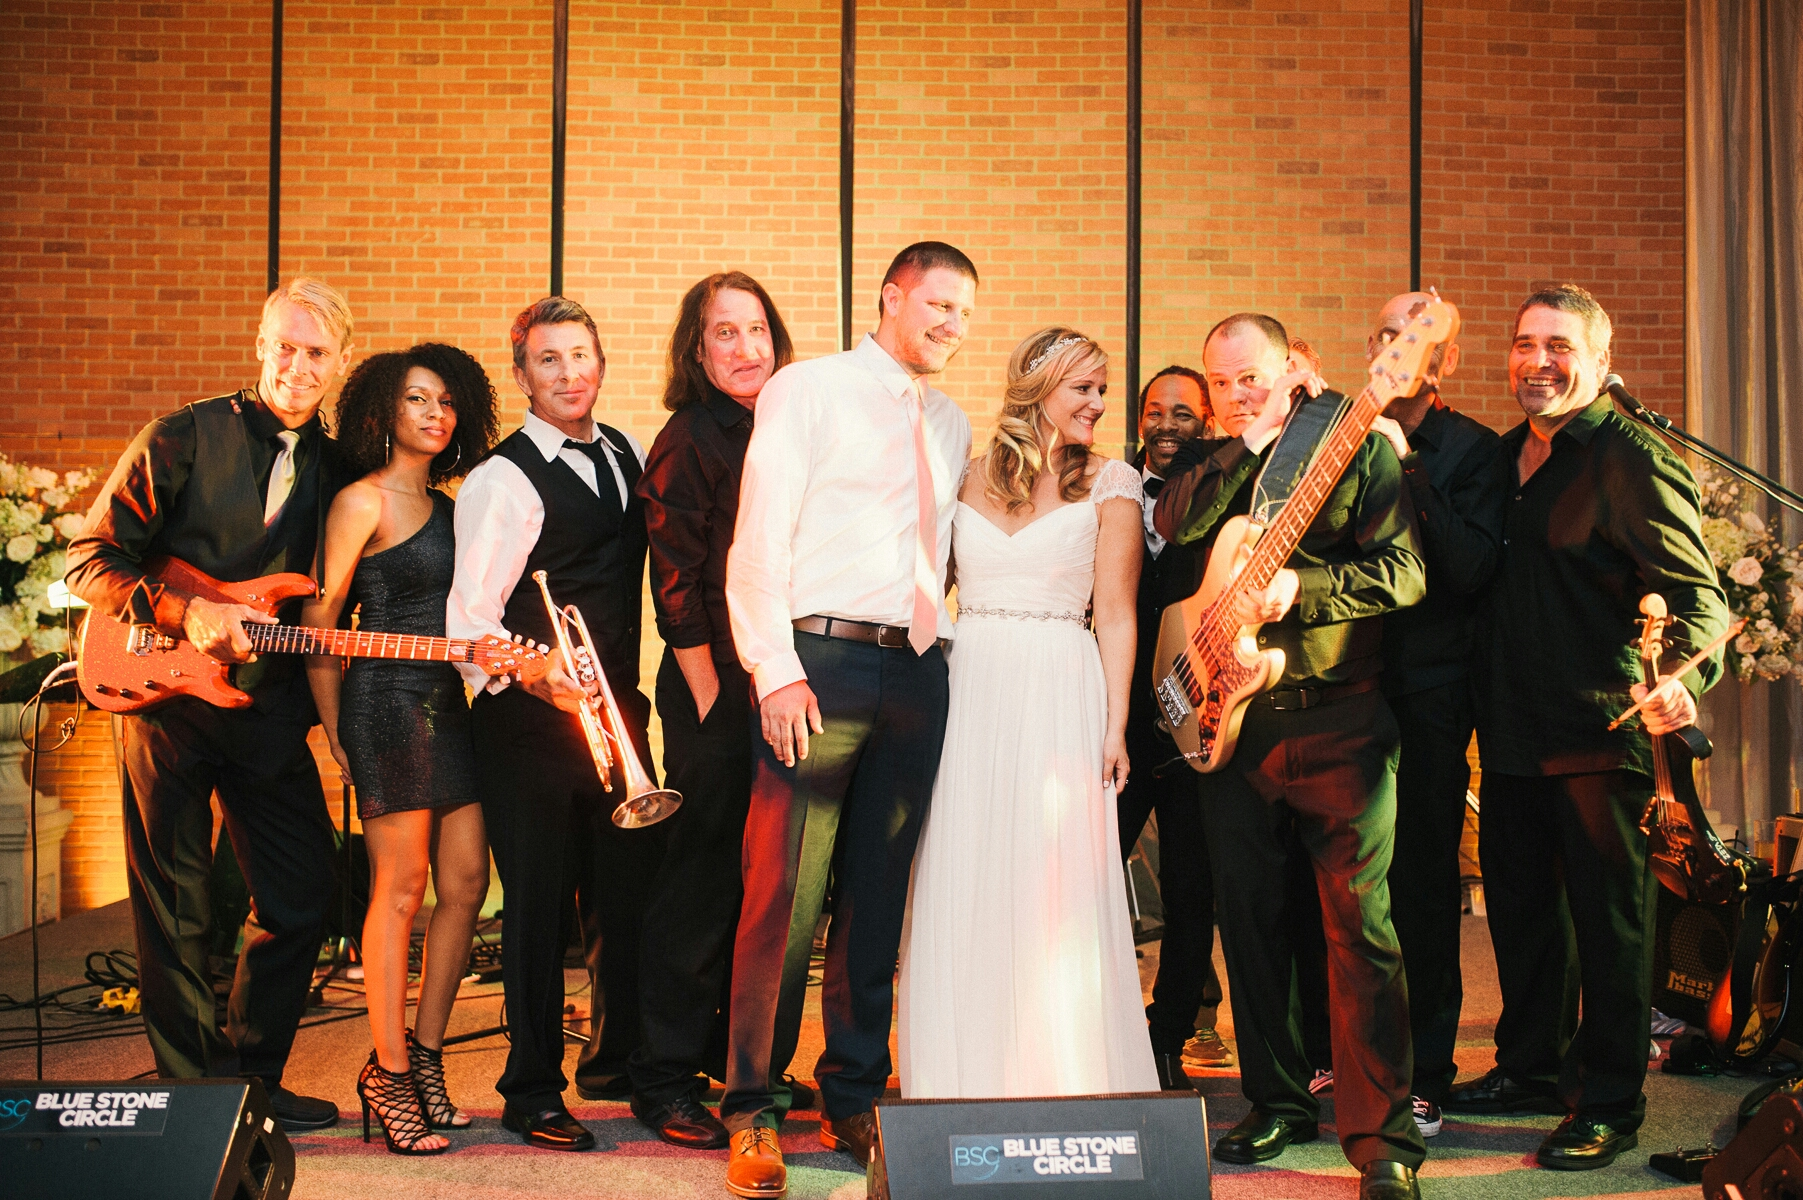 Blue Stone Circle Wedding, Corporate, Special Events Band image 1